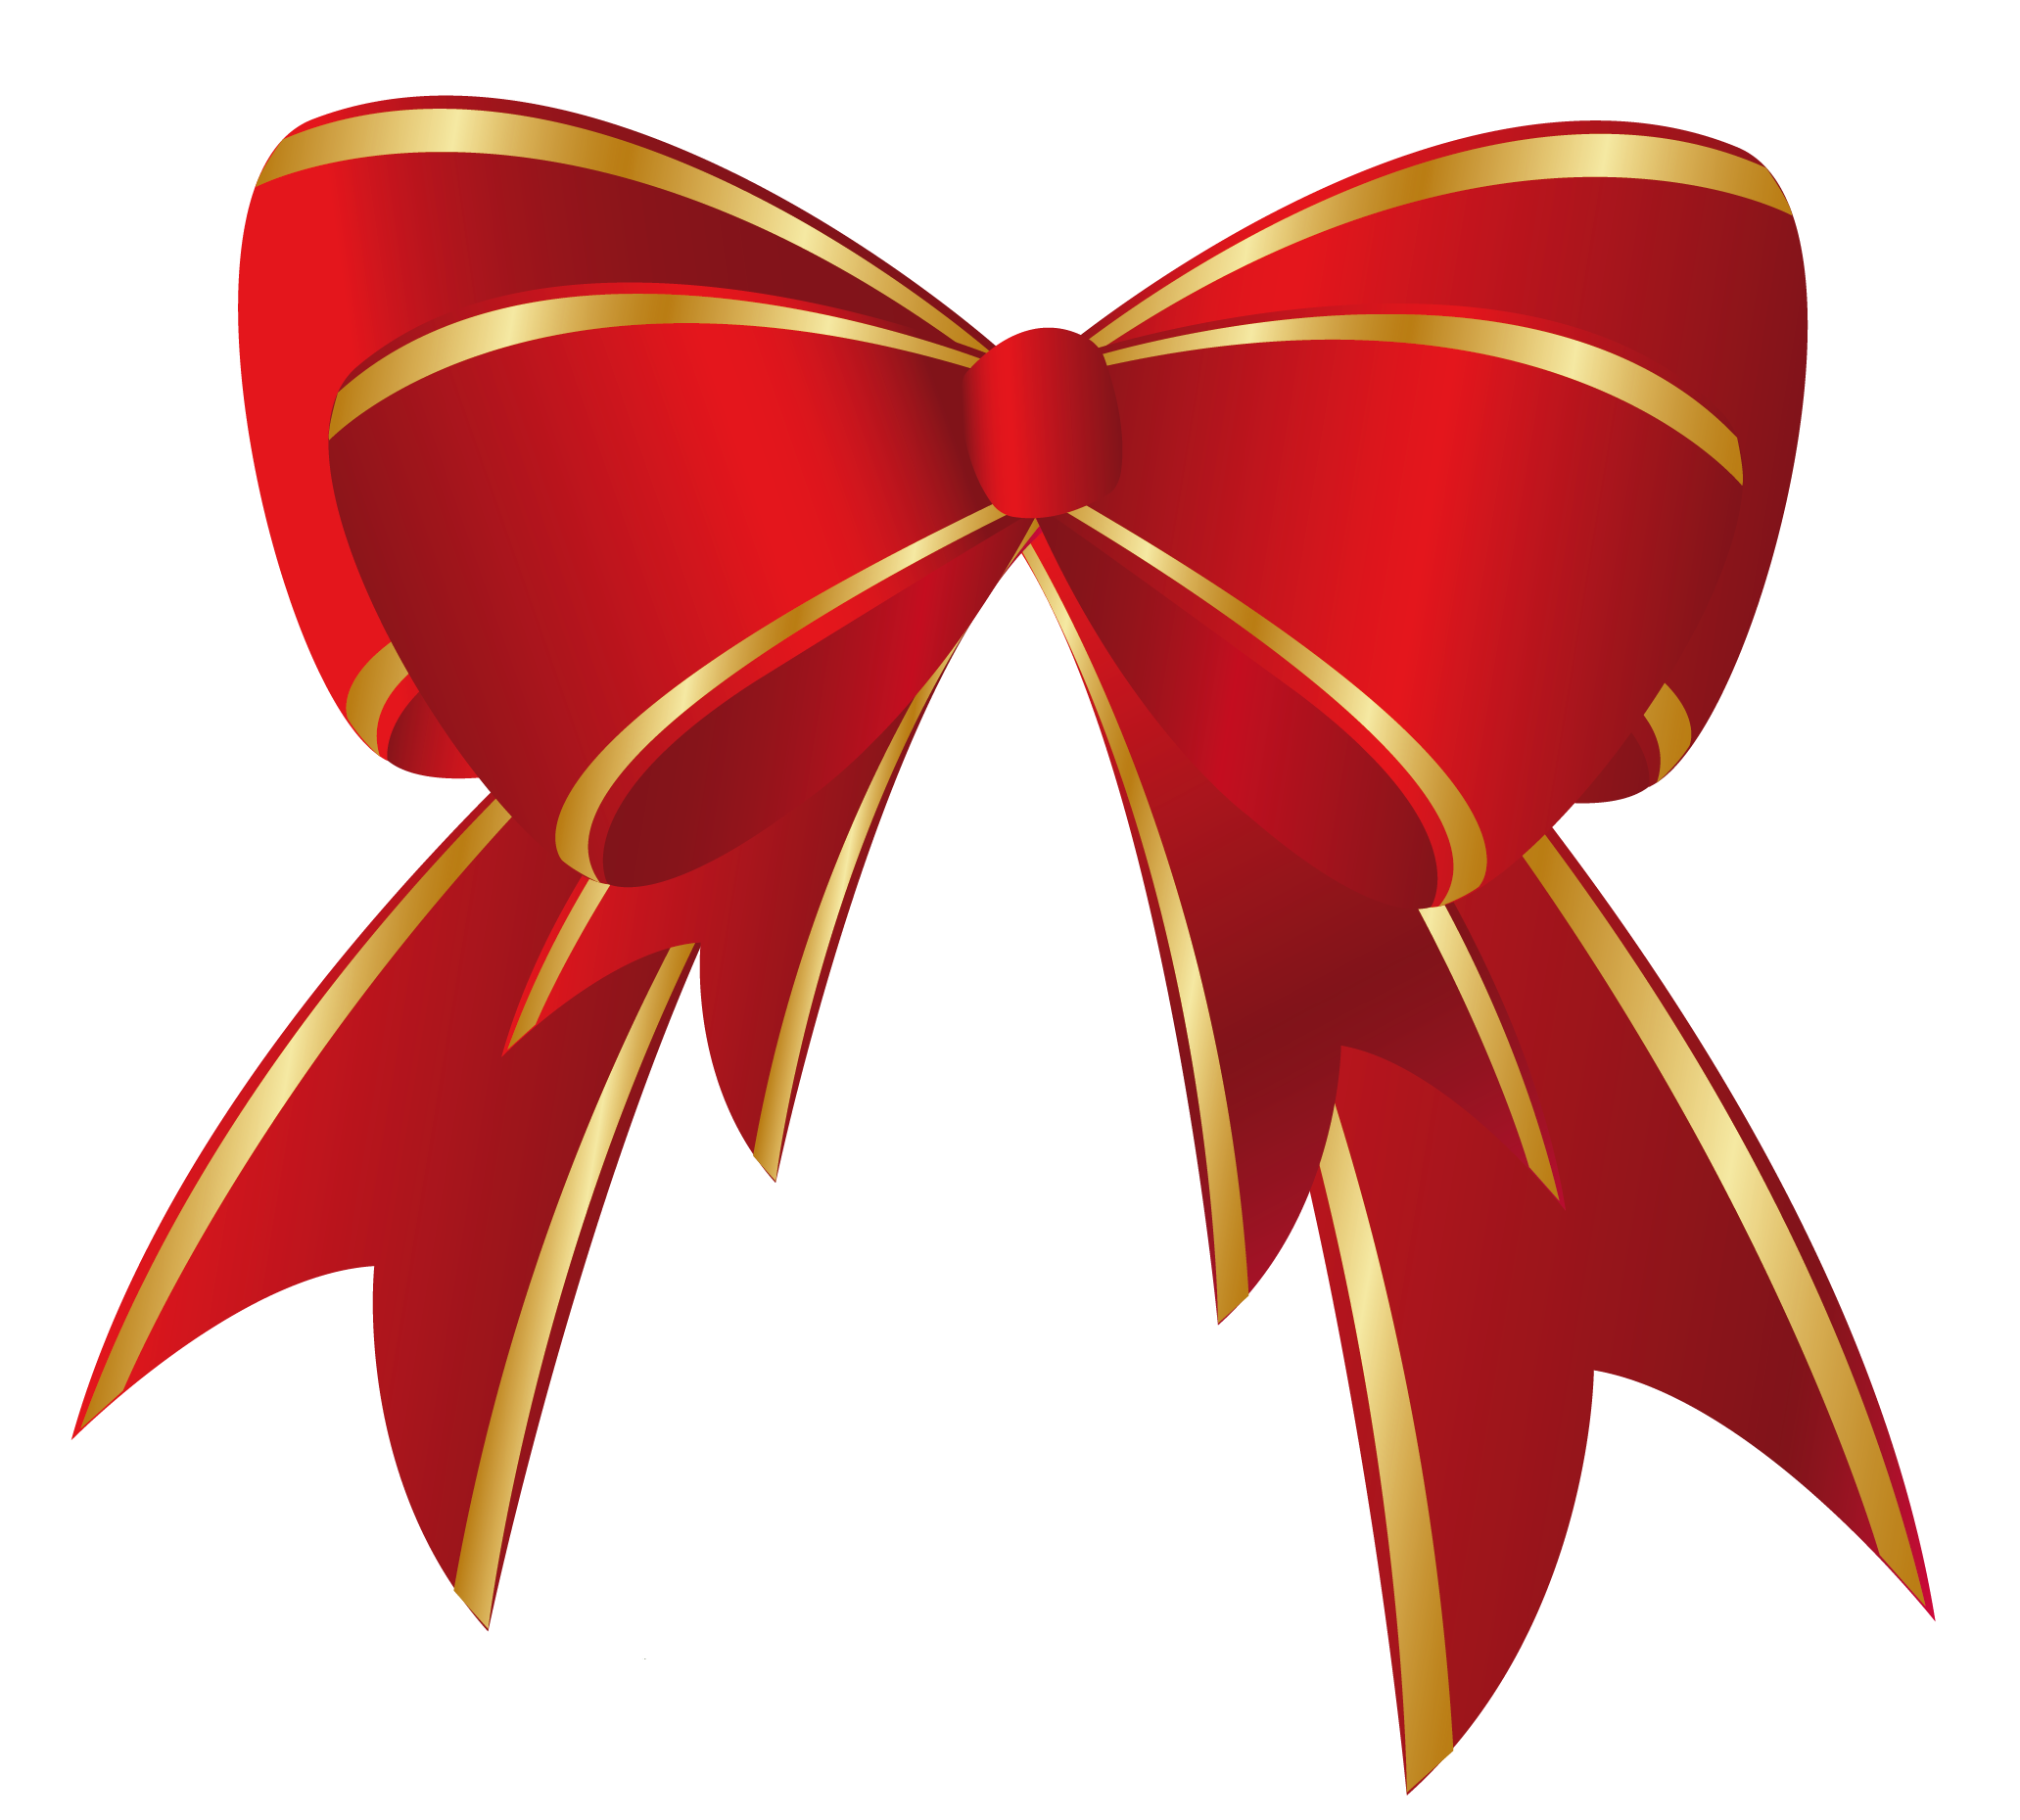 Christmas ribbon cliparts download. Free clipart of bows